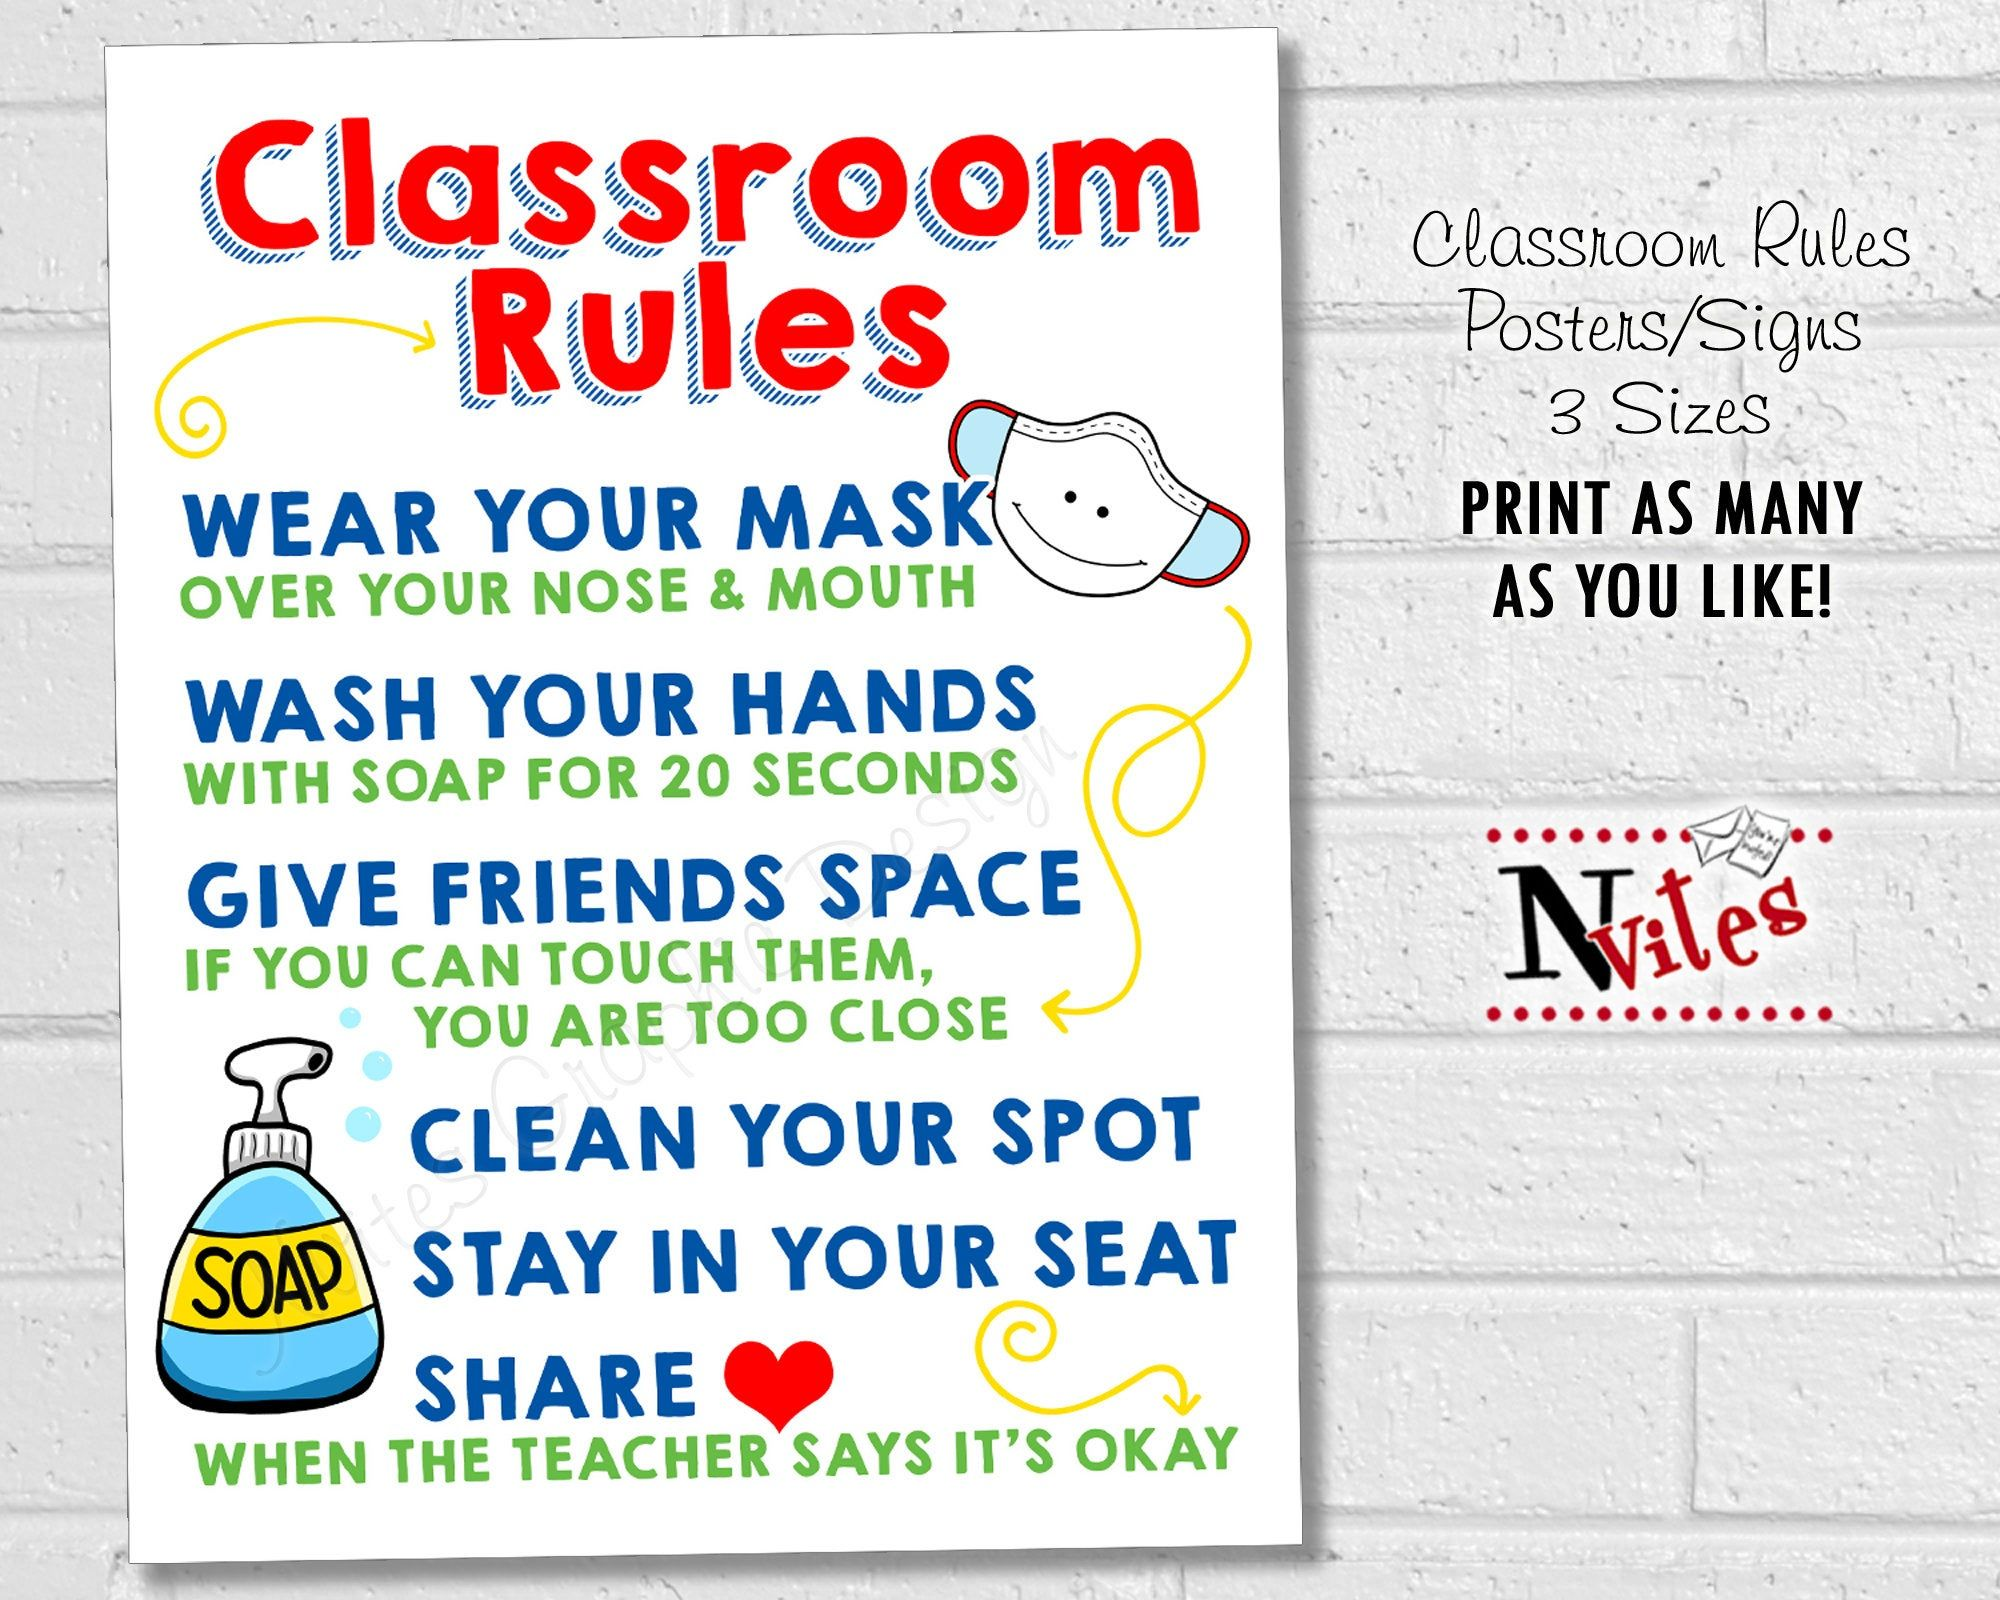 Classroom Rules Posters School Safety Signs Elementary